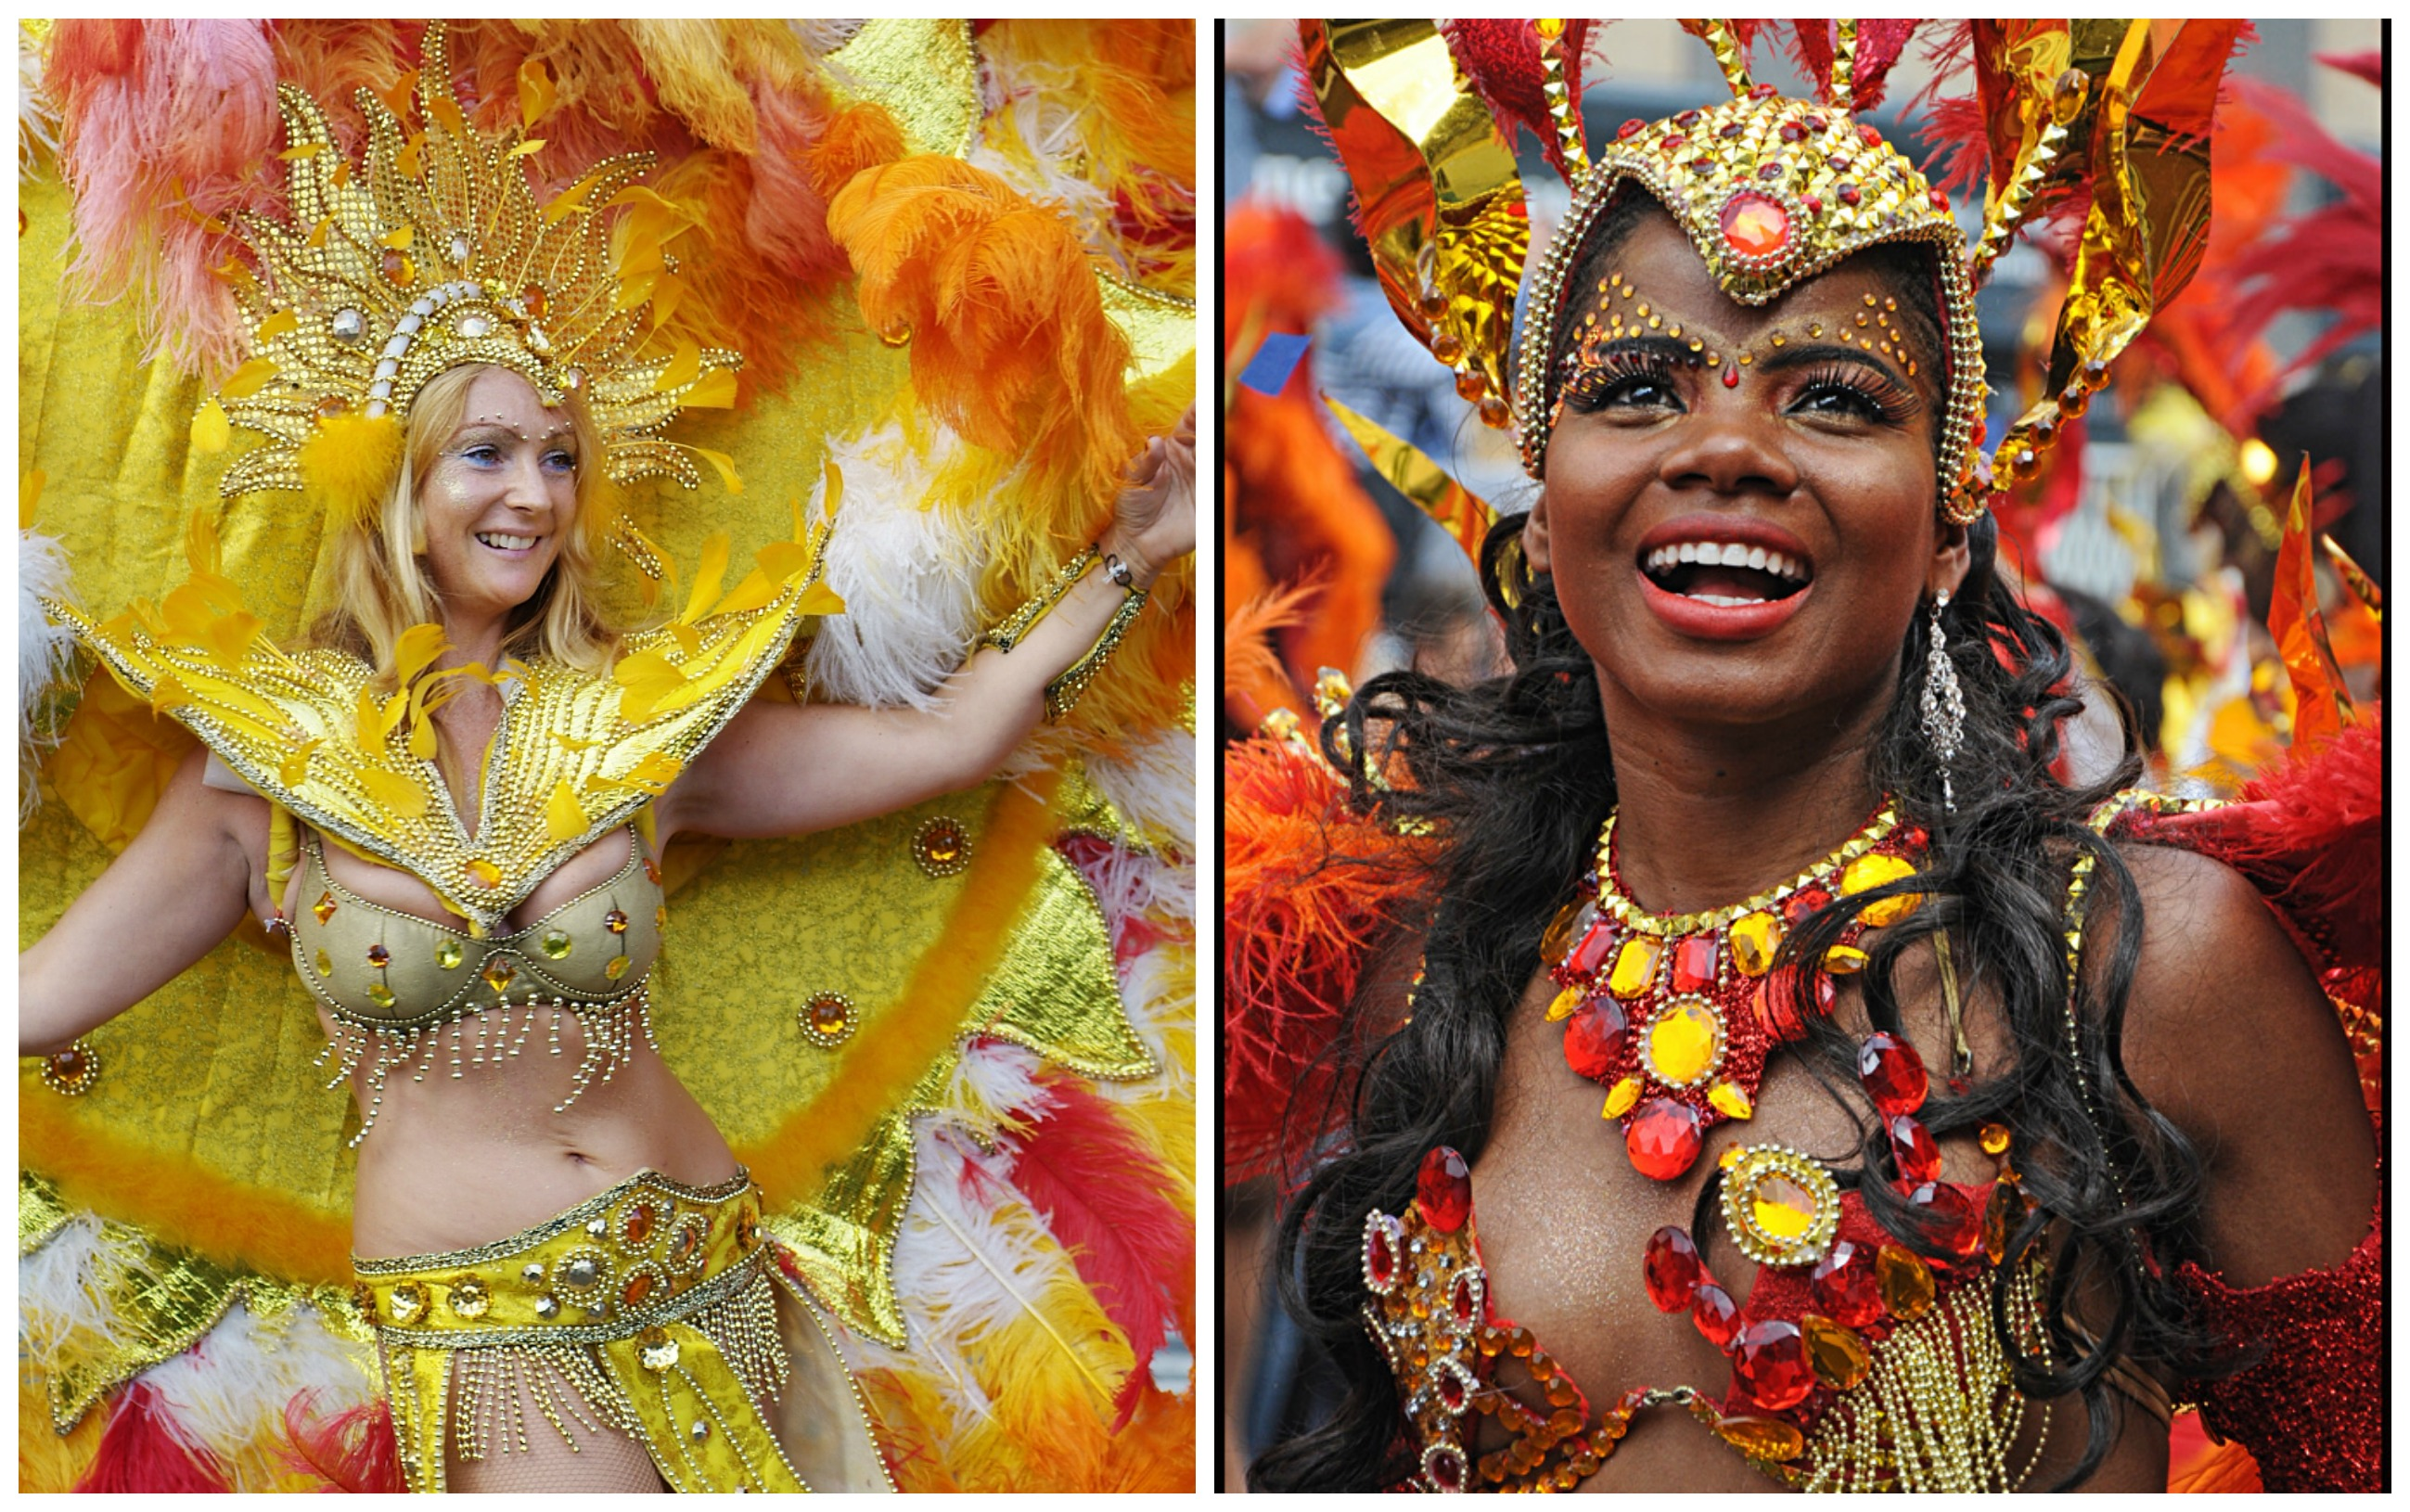 The Essential Guide To Notting Hill Carnival 2016